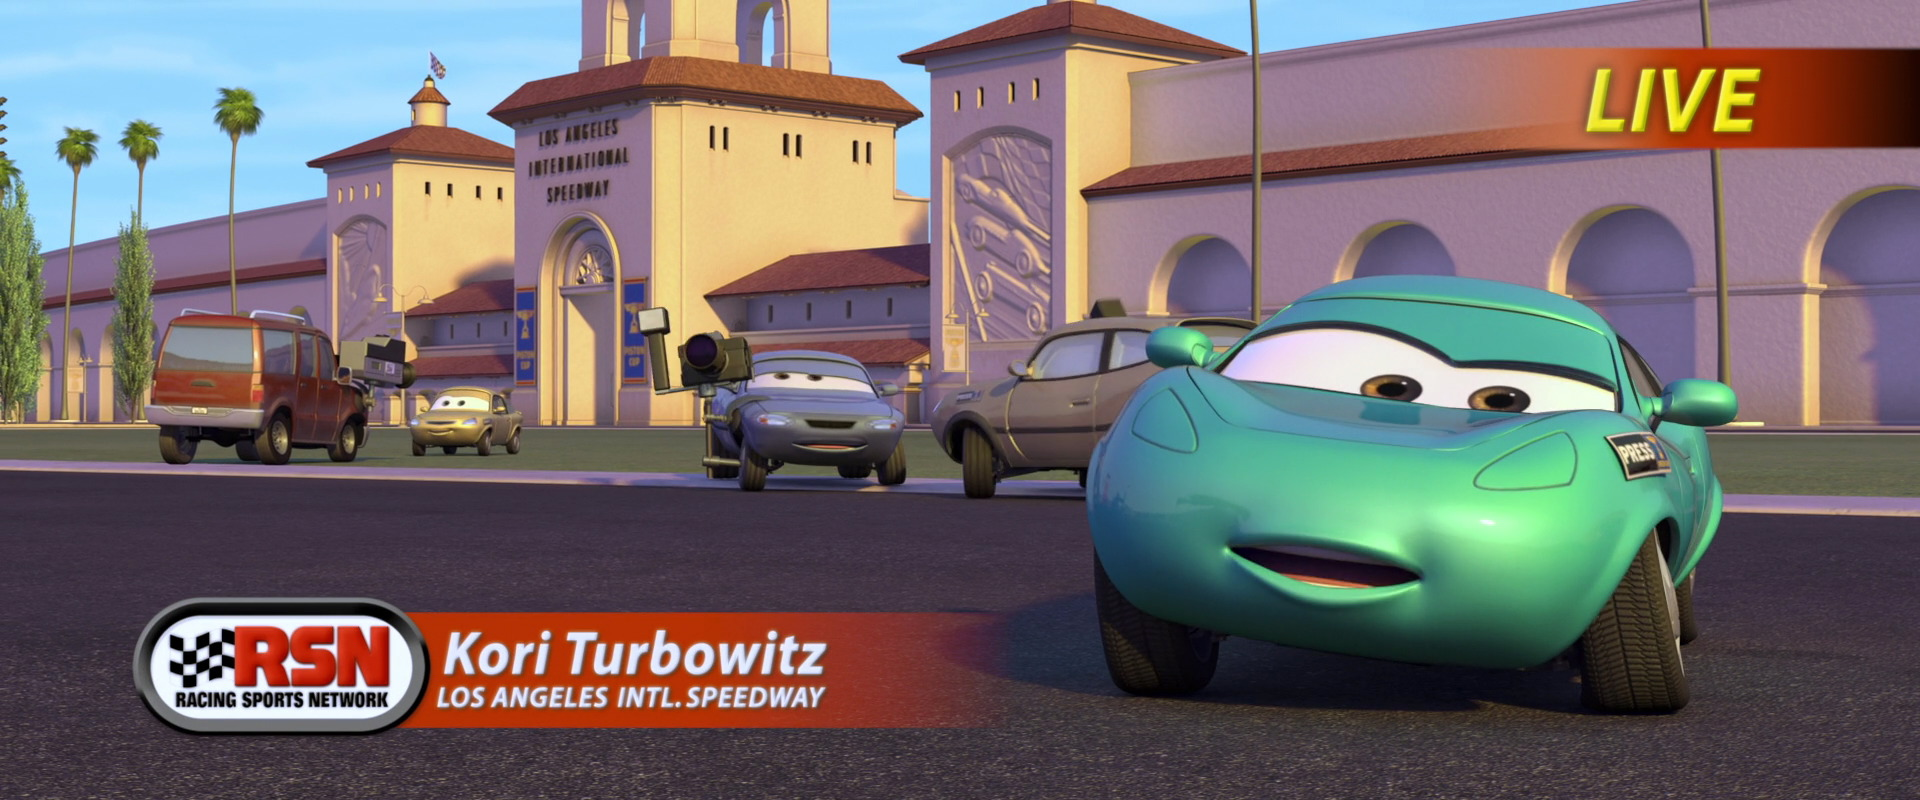 Kori turbowitz world of cars wiki fandom powered by wikia for Motor speedway los angeles